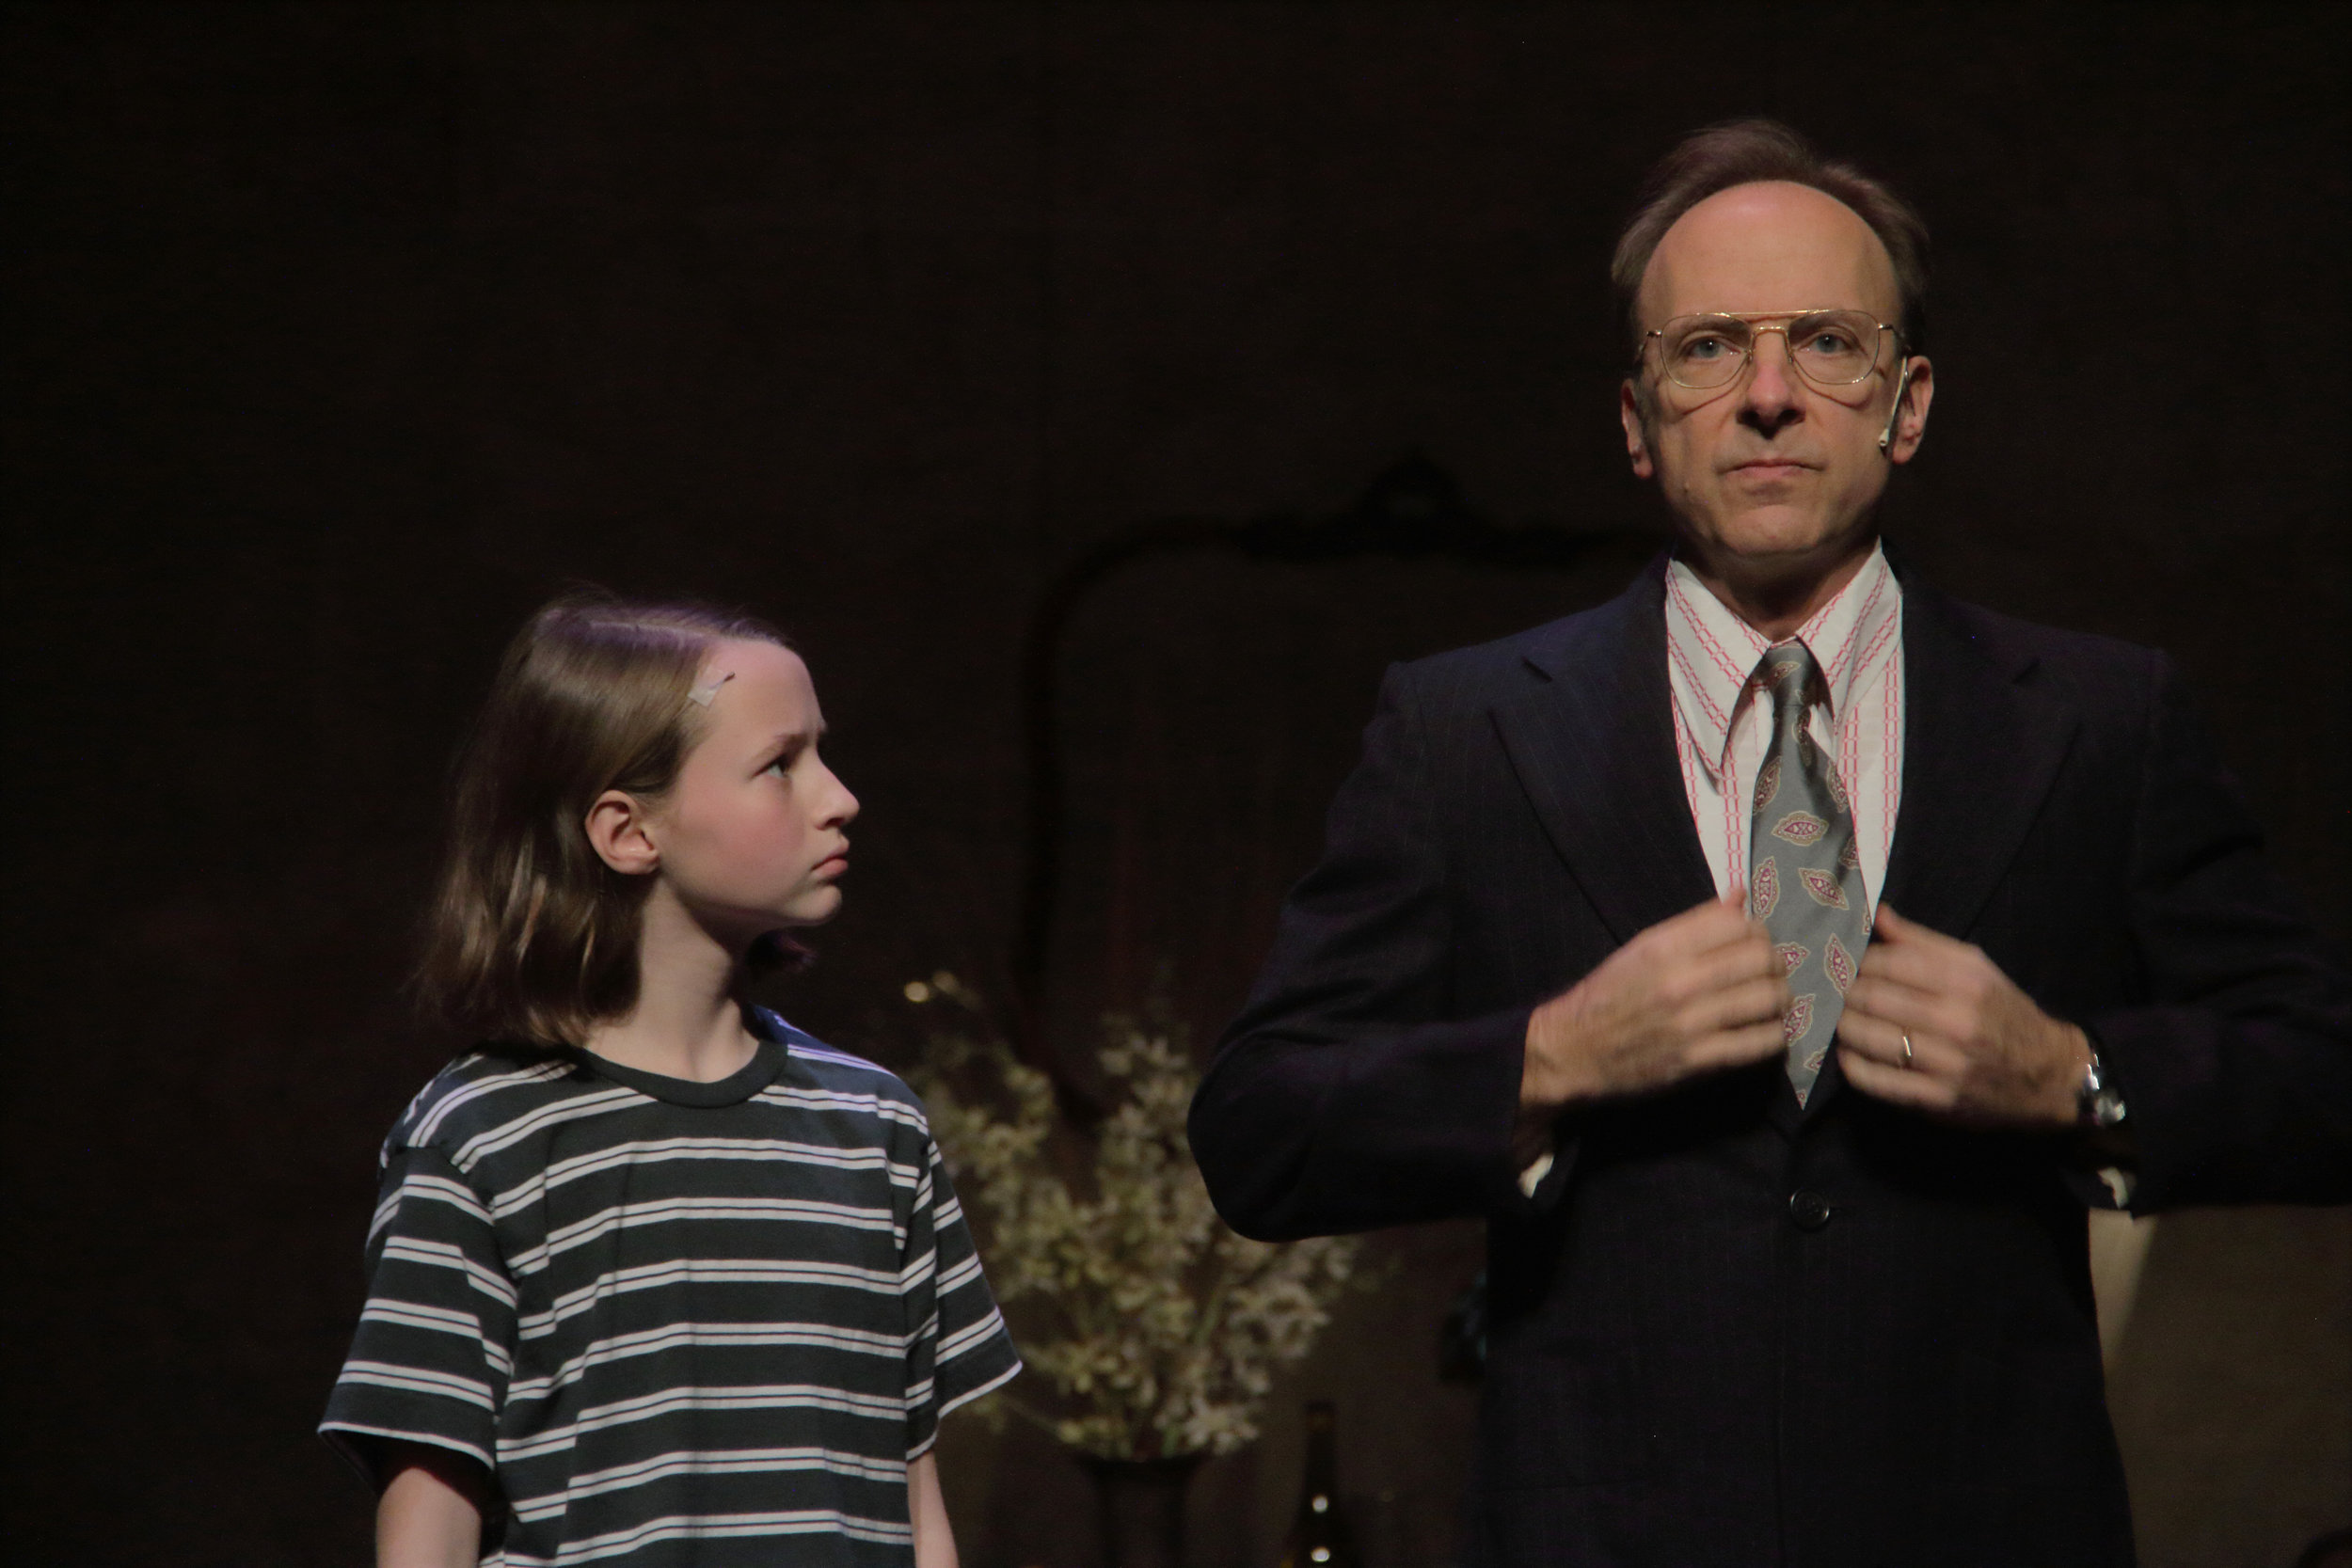 FunHome closeups 110_edit.jpg